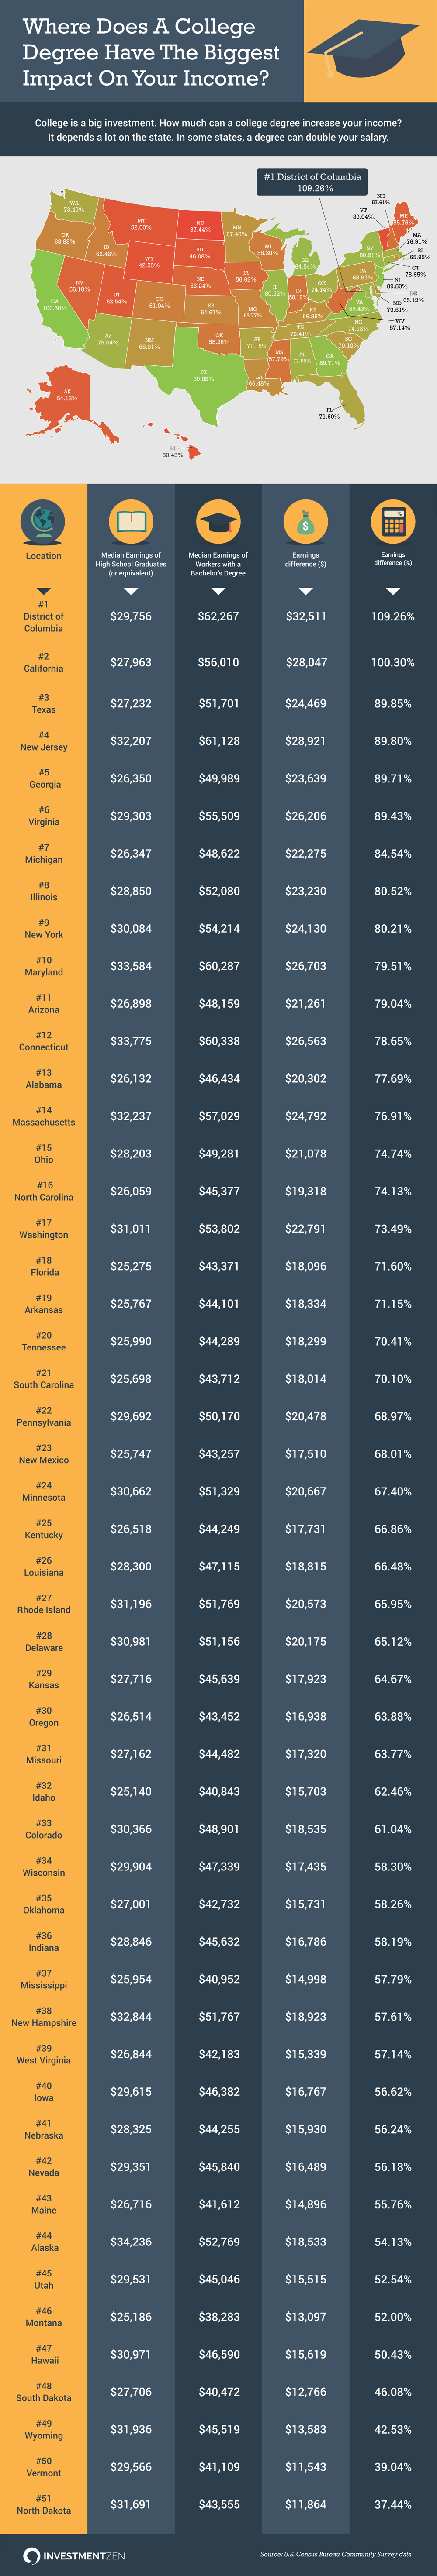 Where-Does-A-College-Degree-Have-The-Biggest-Impact-On-Your-Income.png